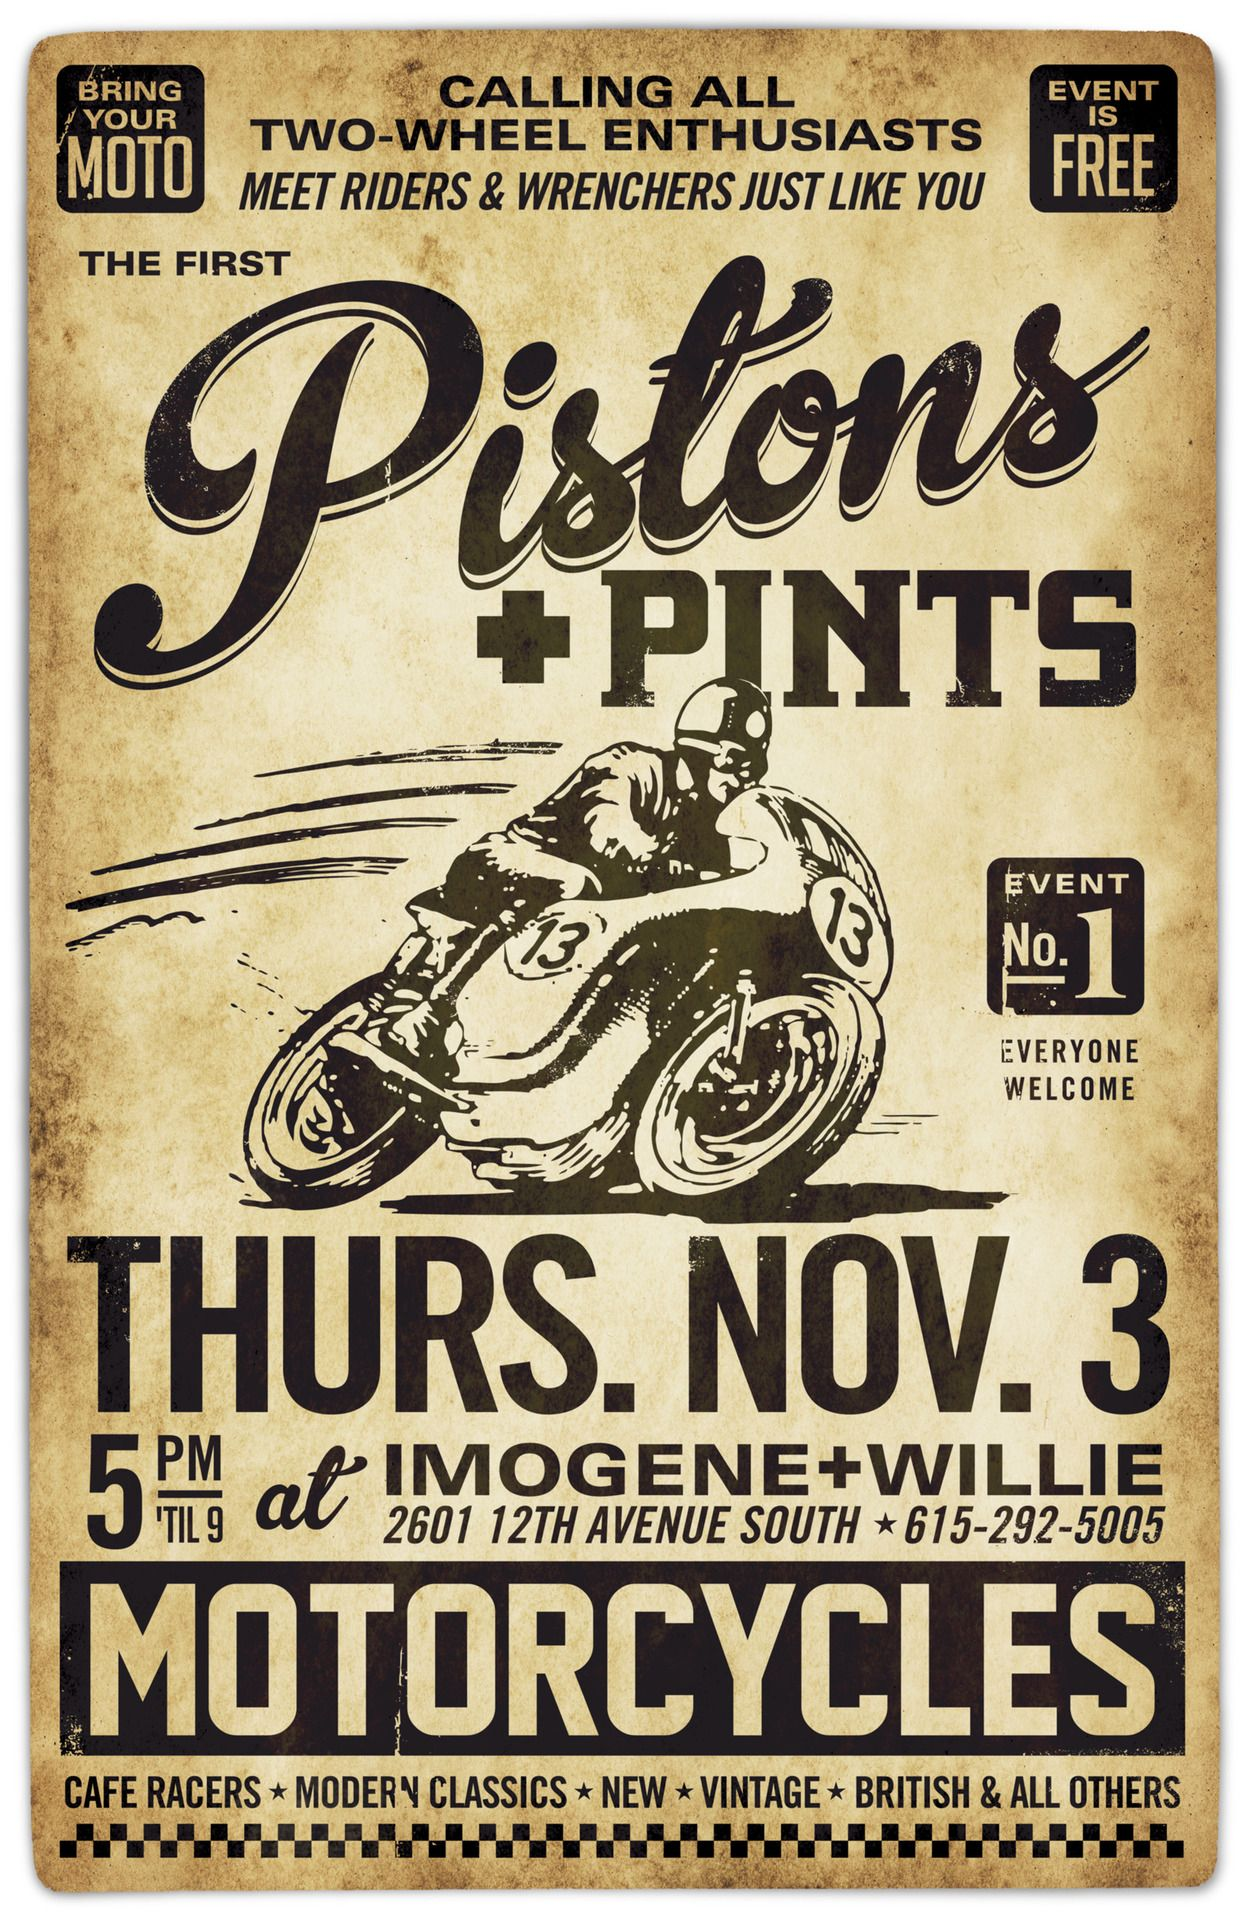 27 Inspiring Designs From Our Friends On Pinterest Vintage Motorcycle Posters Motorcycle Posters Vintage Posters